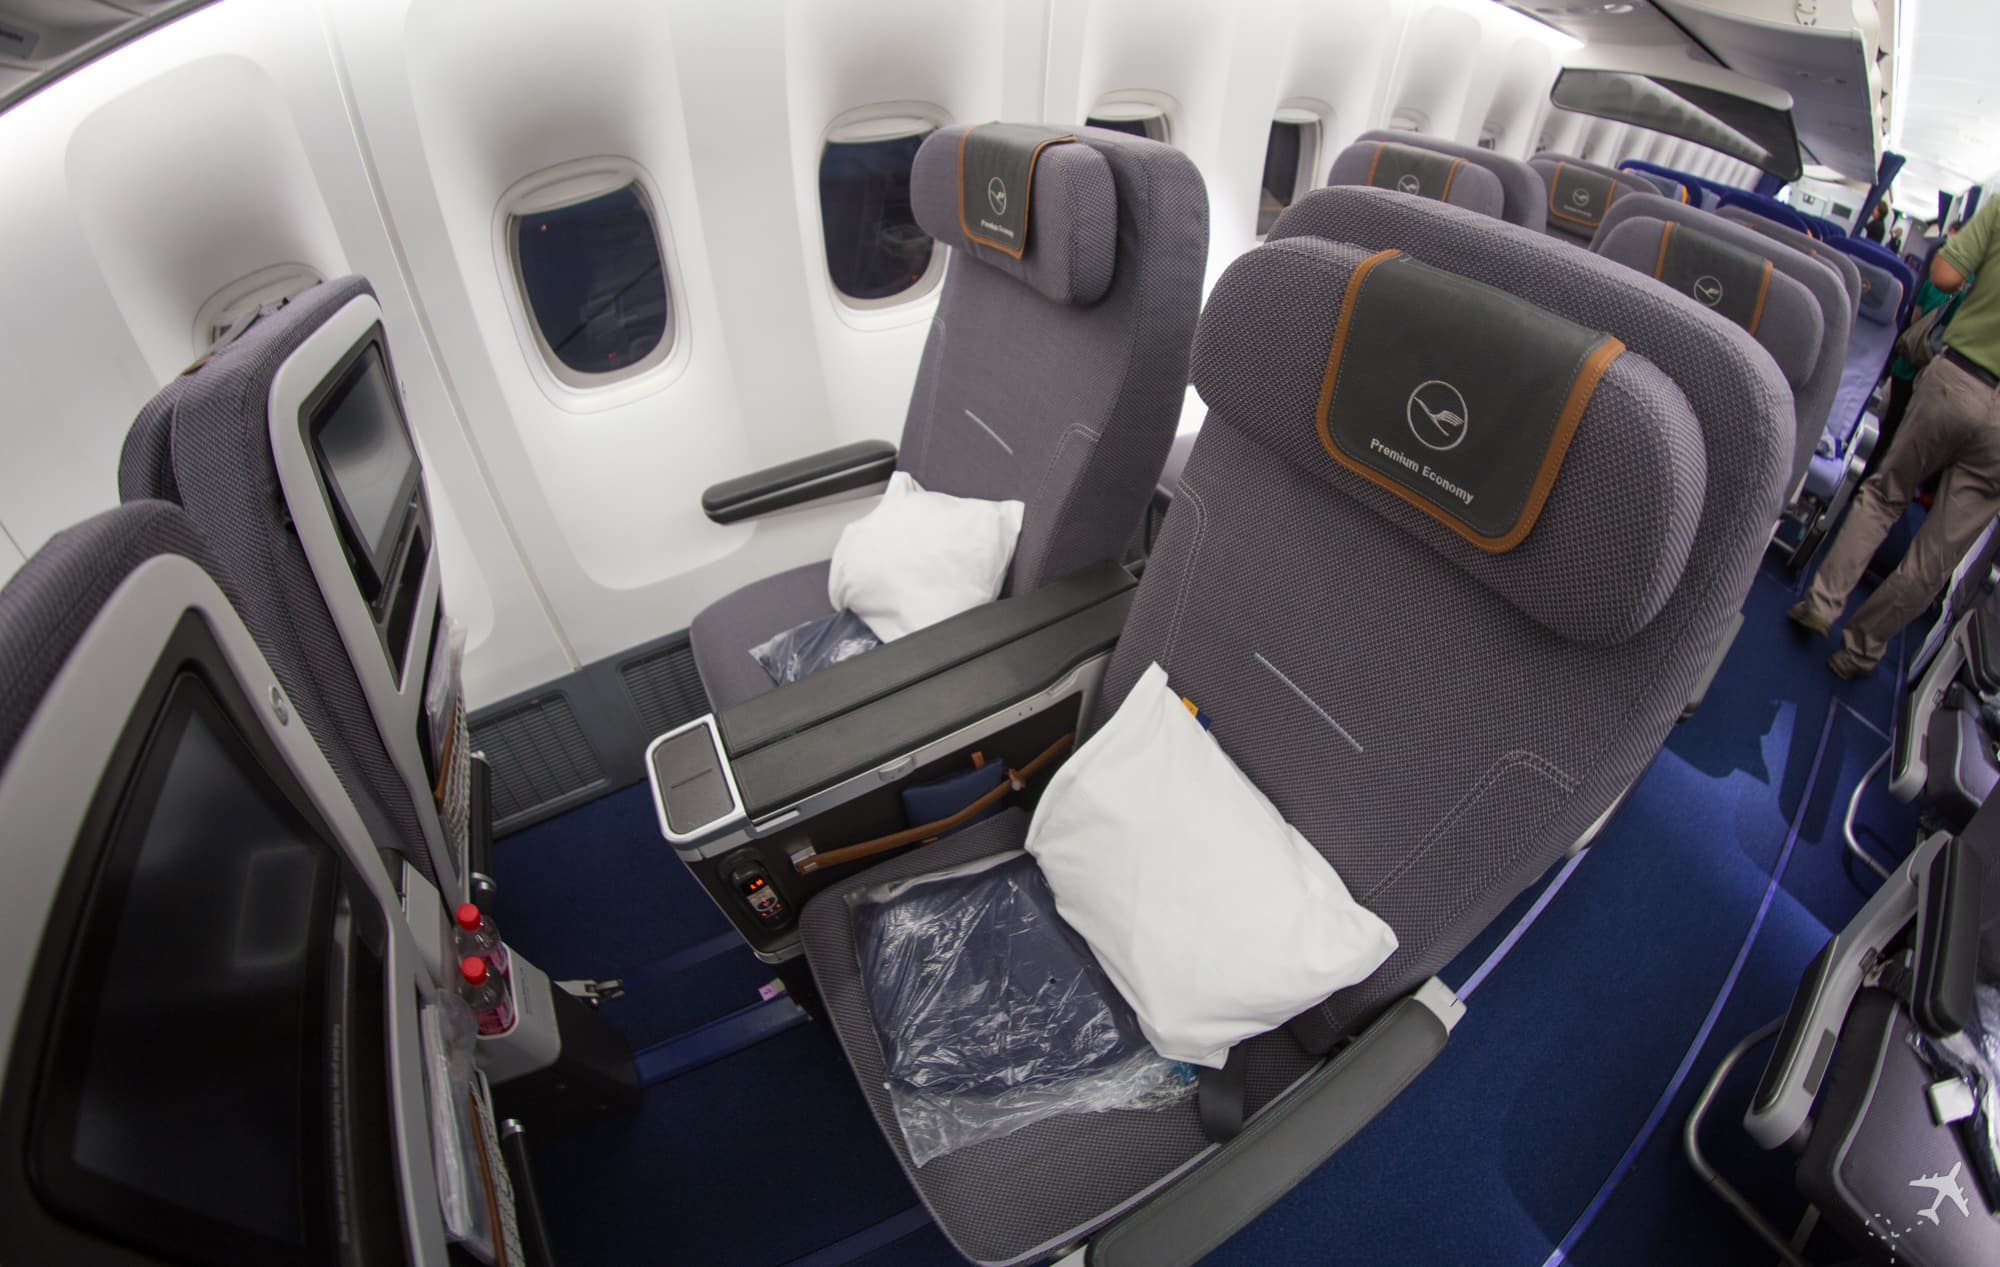 premium economy class Whether you require a child-friendly meal for your young companion or if you  have specific dietary requirements, order a special meal to suit your needs when .